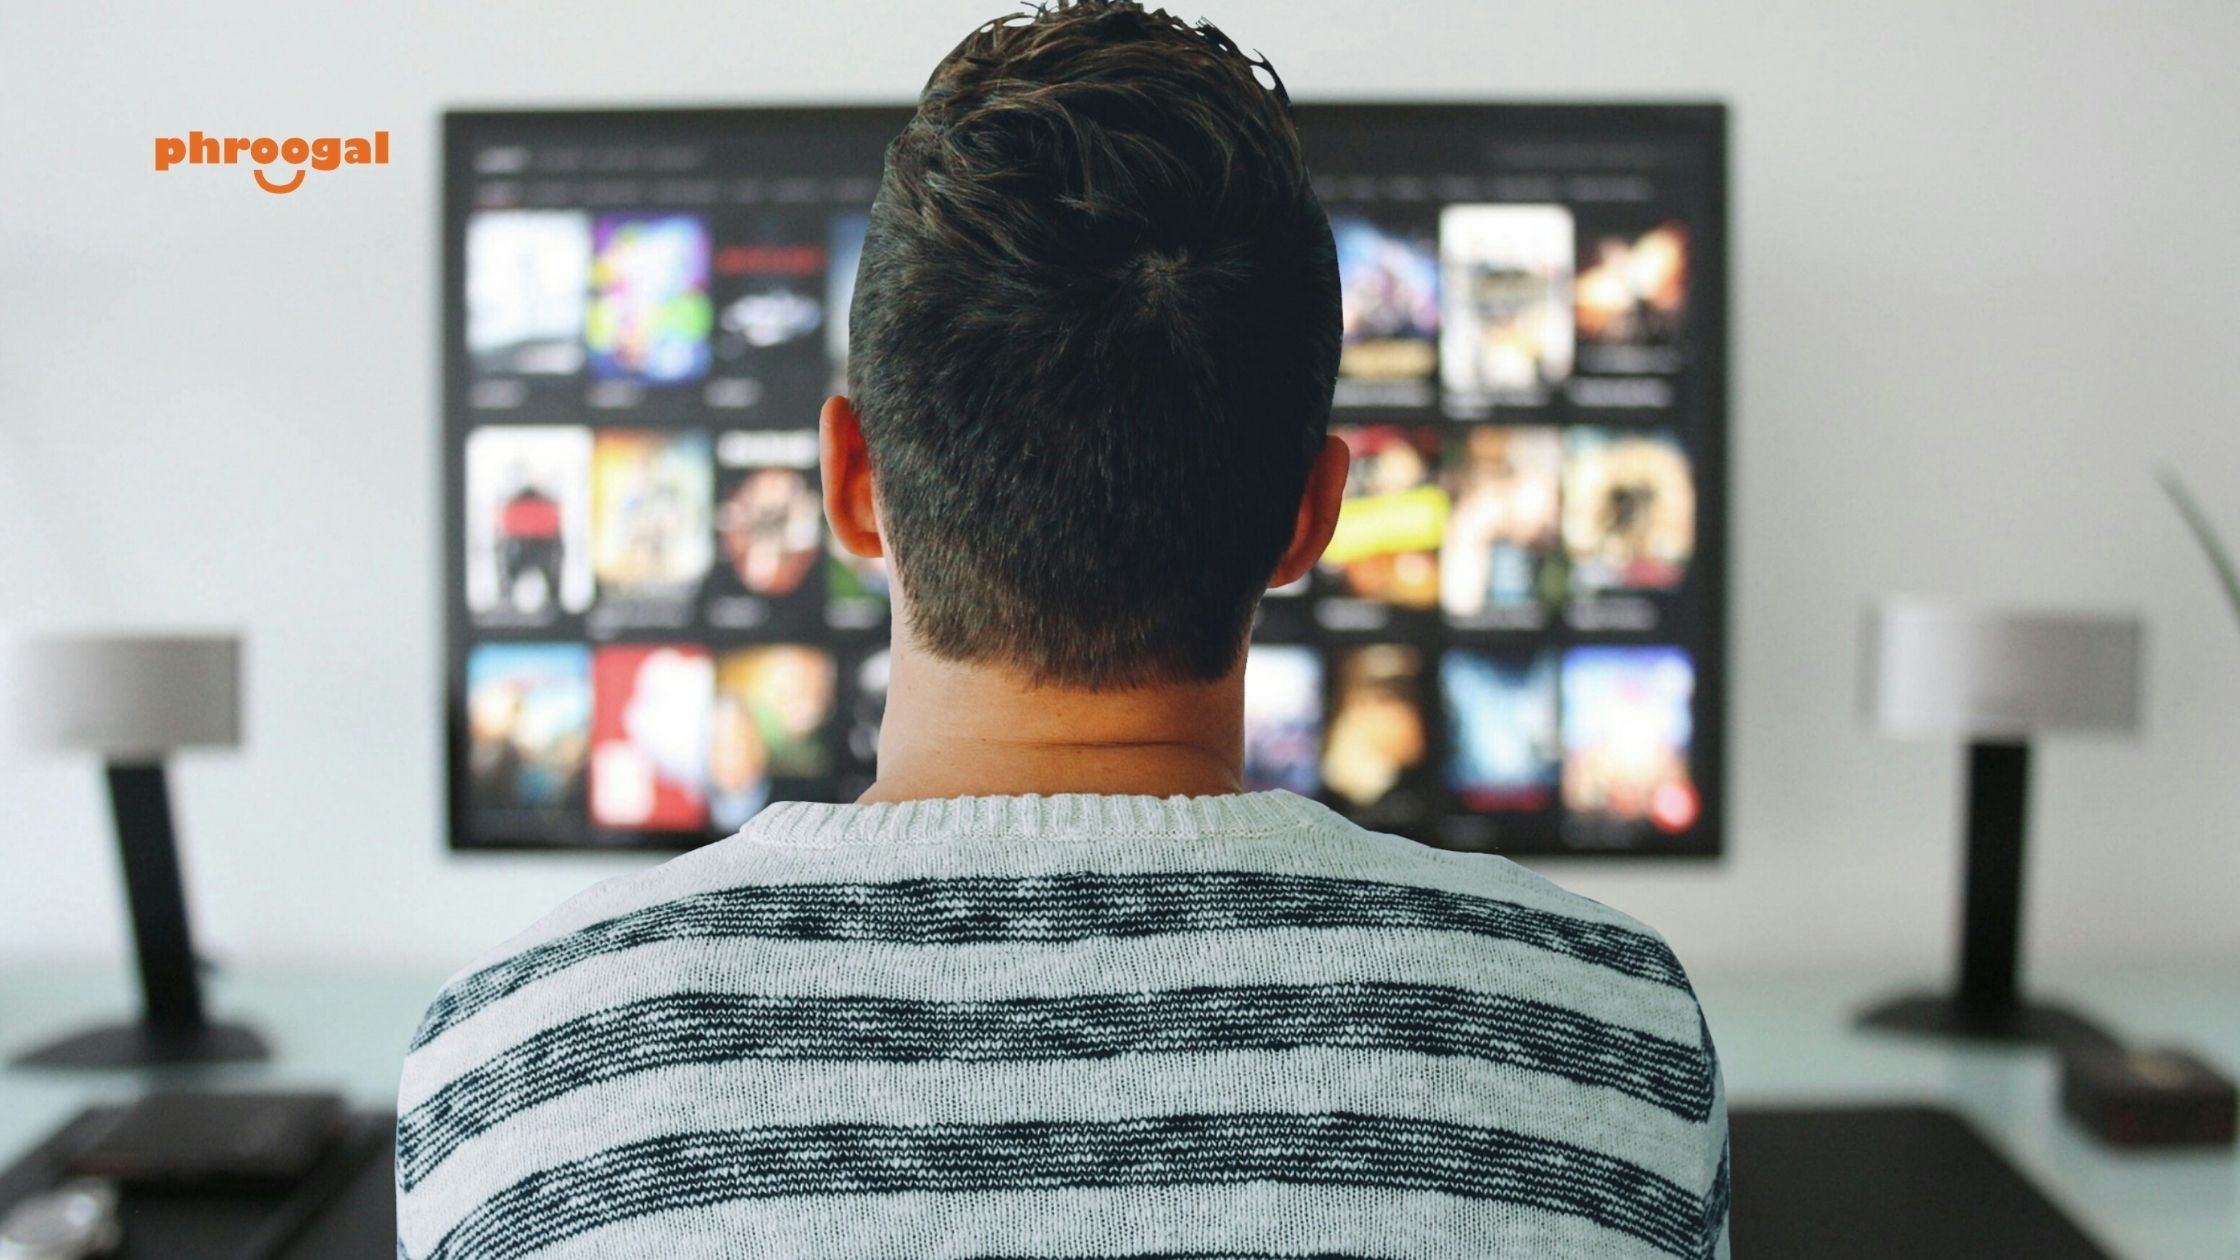 How to Negotiate and Lower Your Cable Bill phroogal